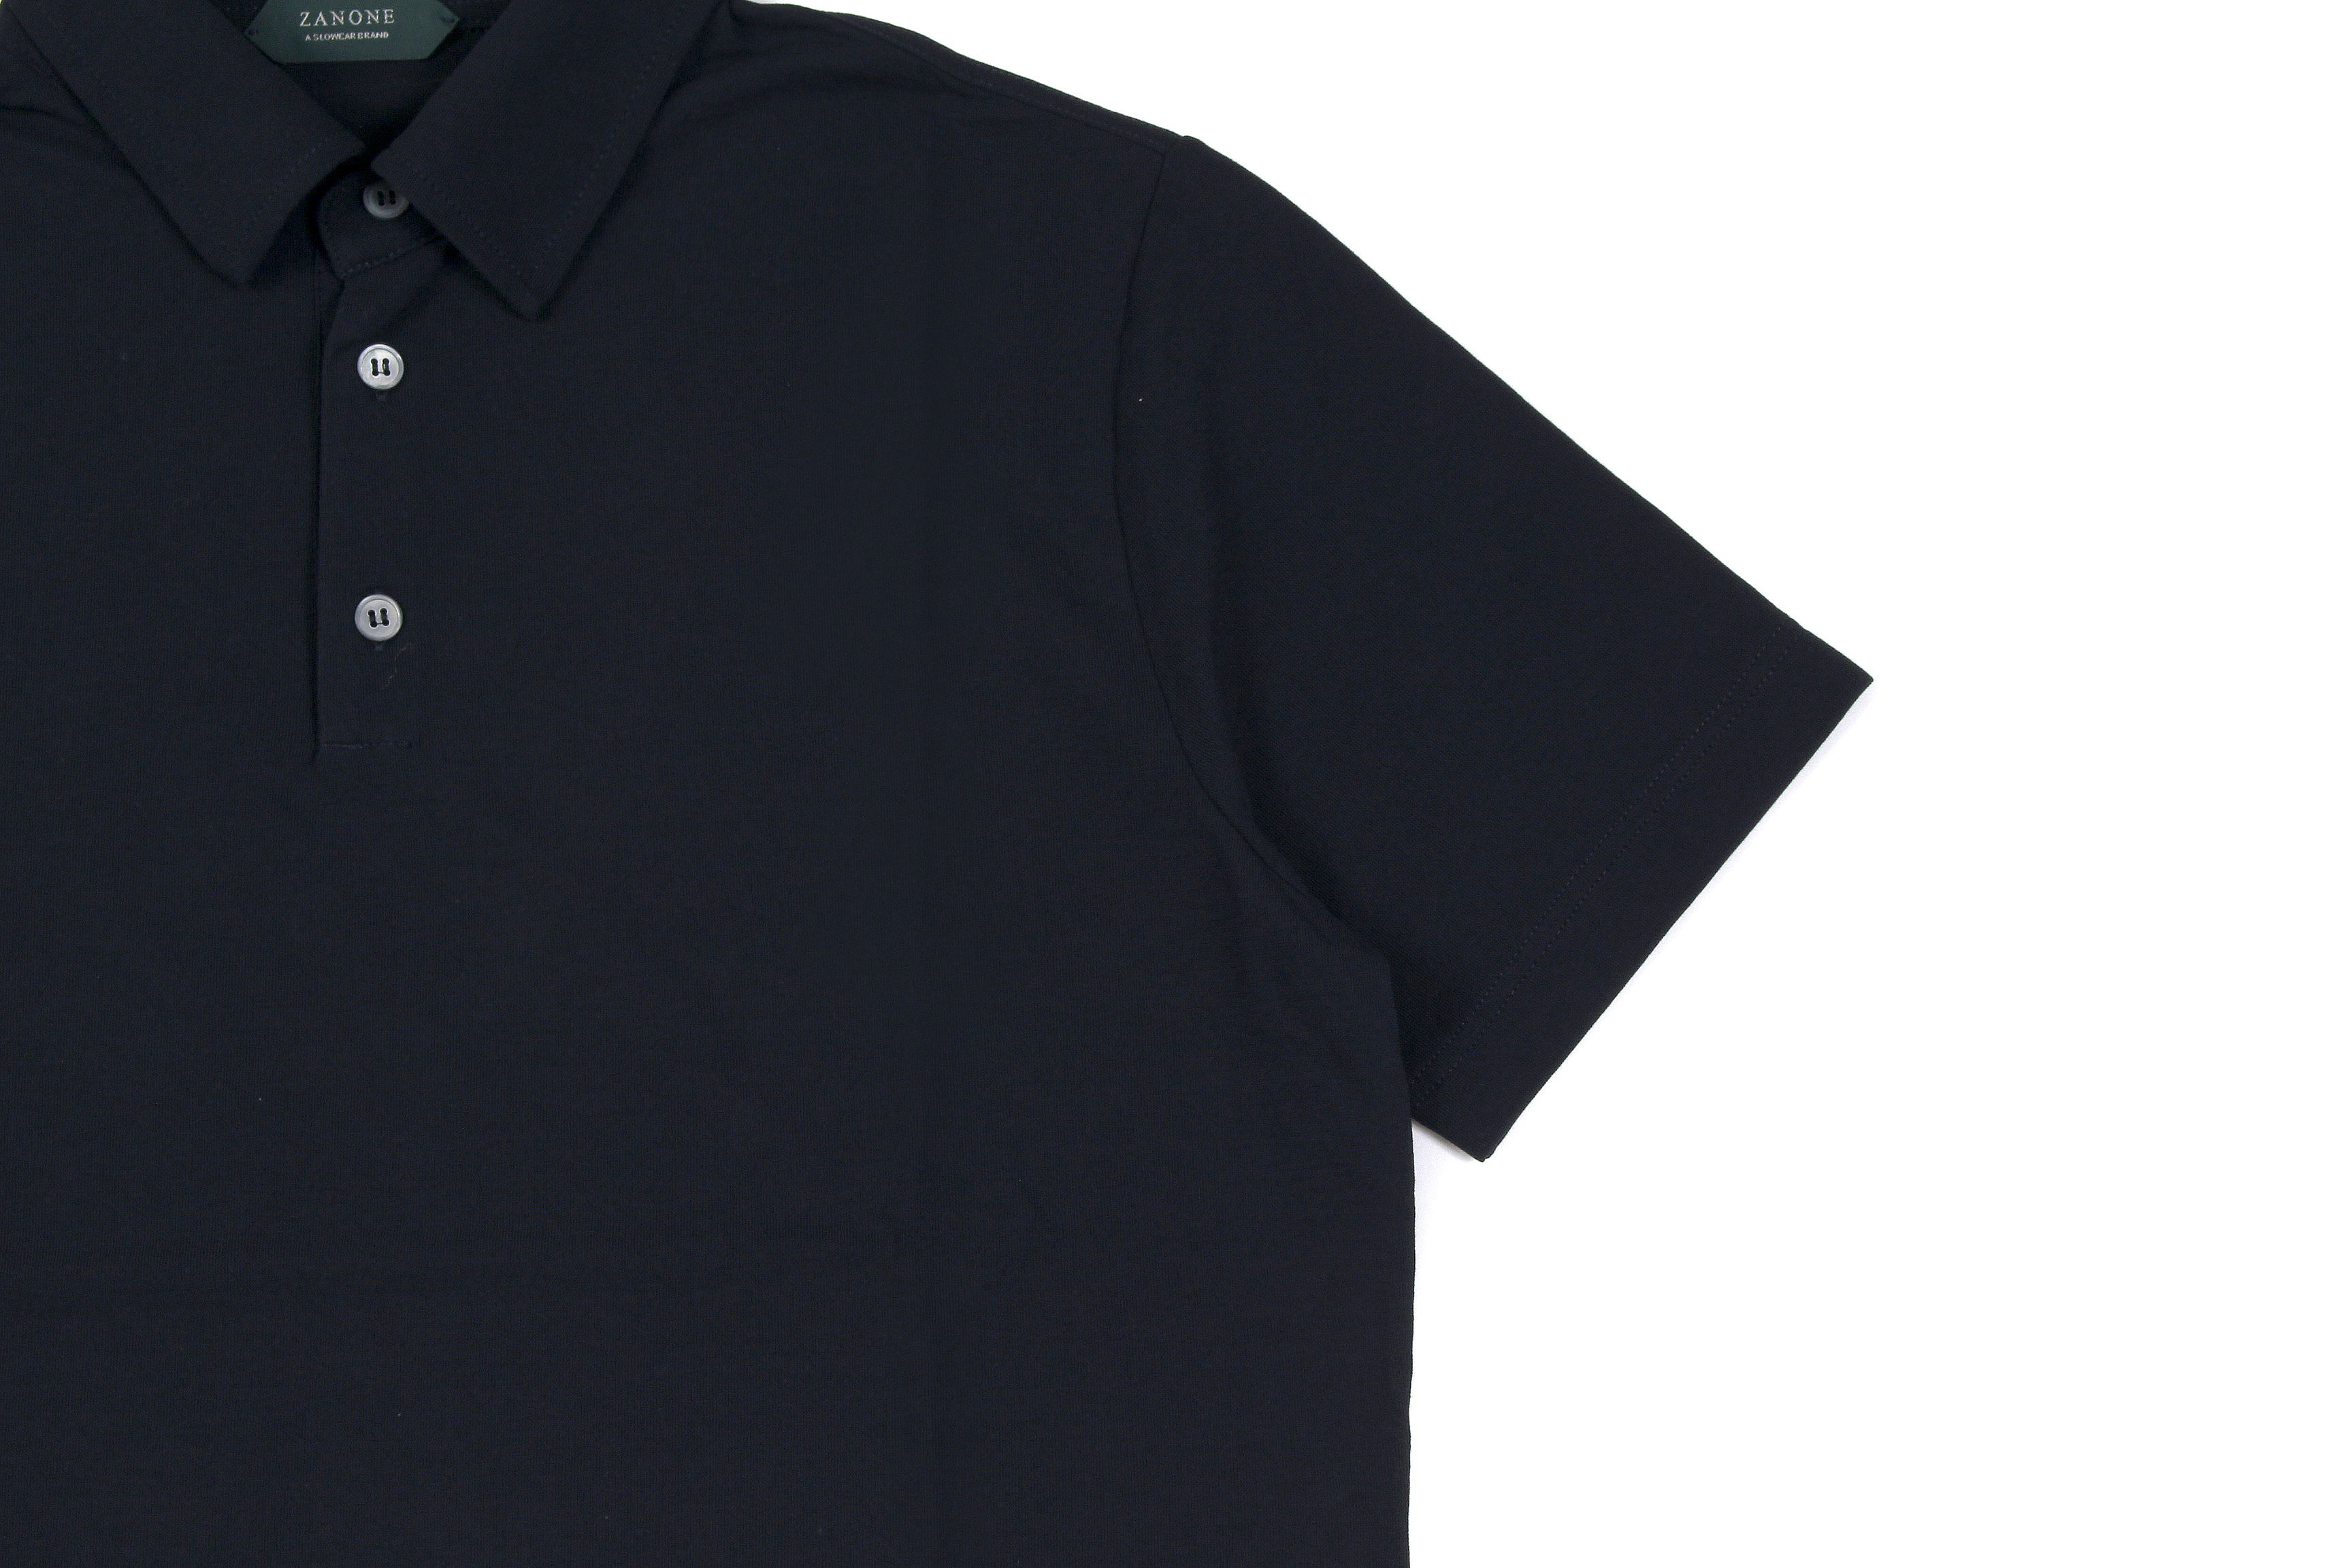 ZANONE(ザノーネ) Polo Shirt ice cotton アイスコットン ポロシャツ NAVY (ネイビー・Z0542) made in italy (イタリア製) 2020春夏新作 愛知 名古屋 altoediritto アルトエデリット